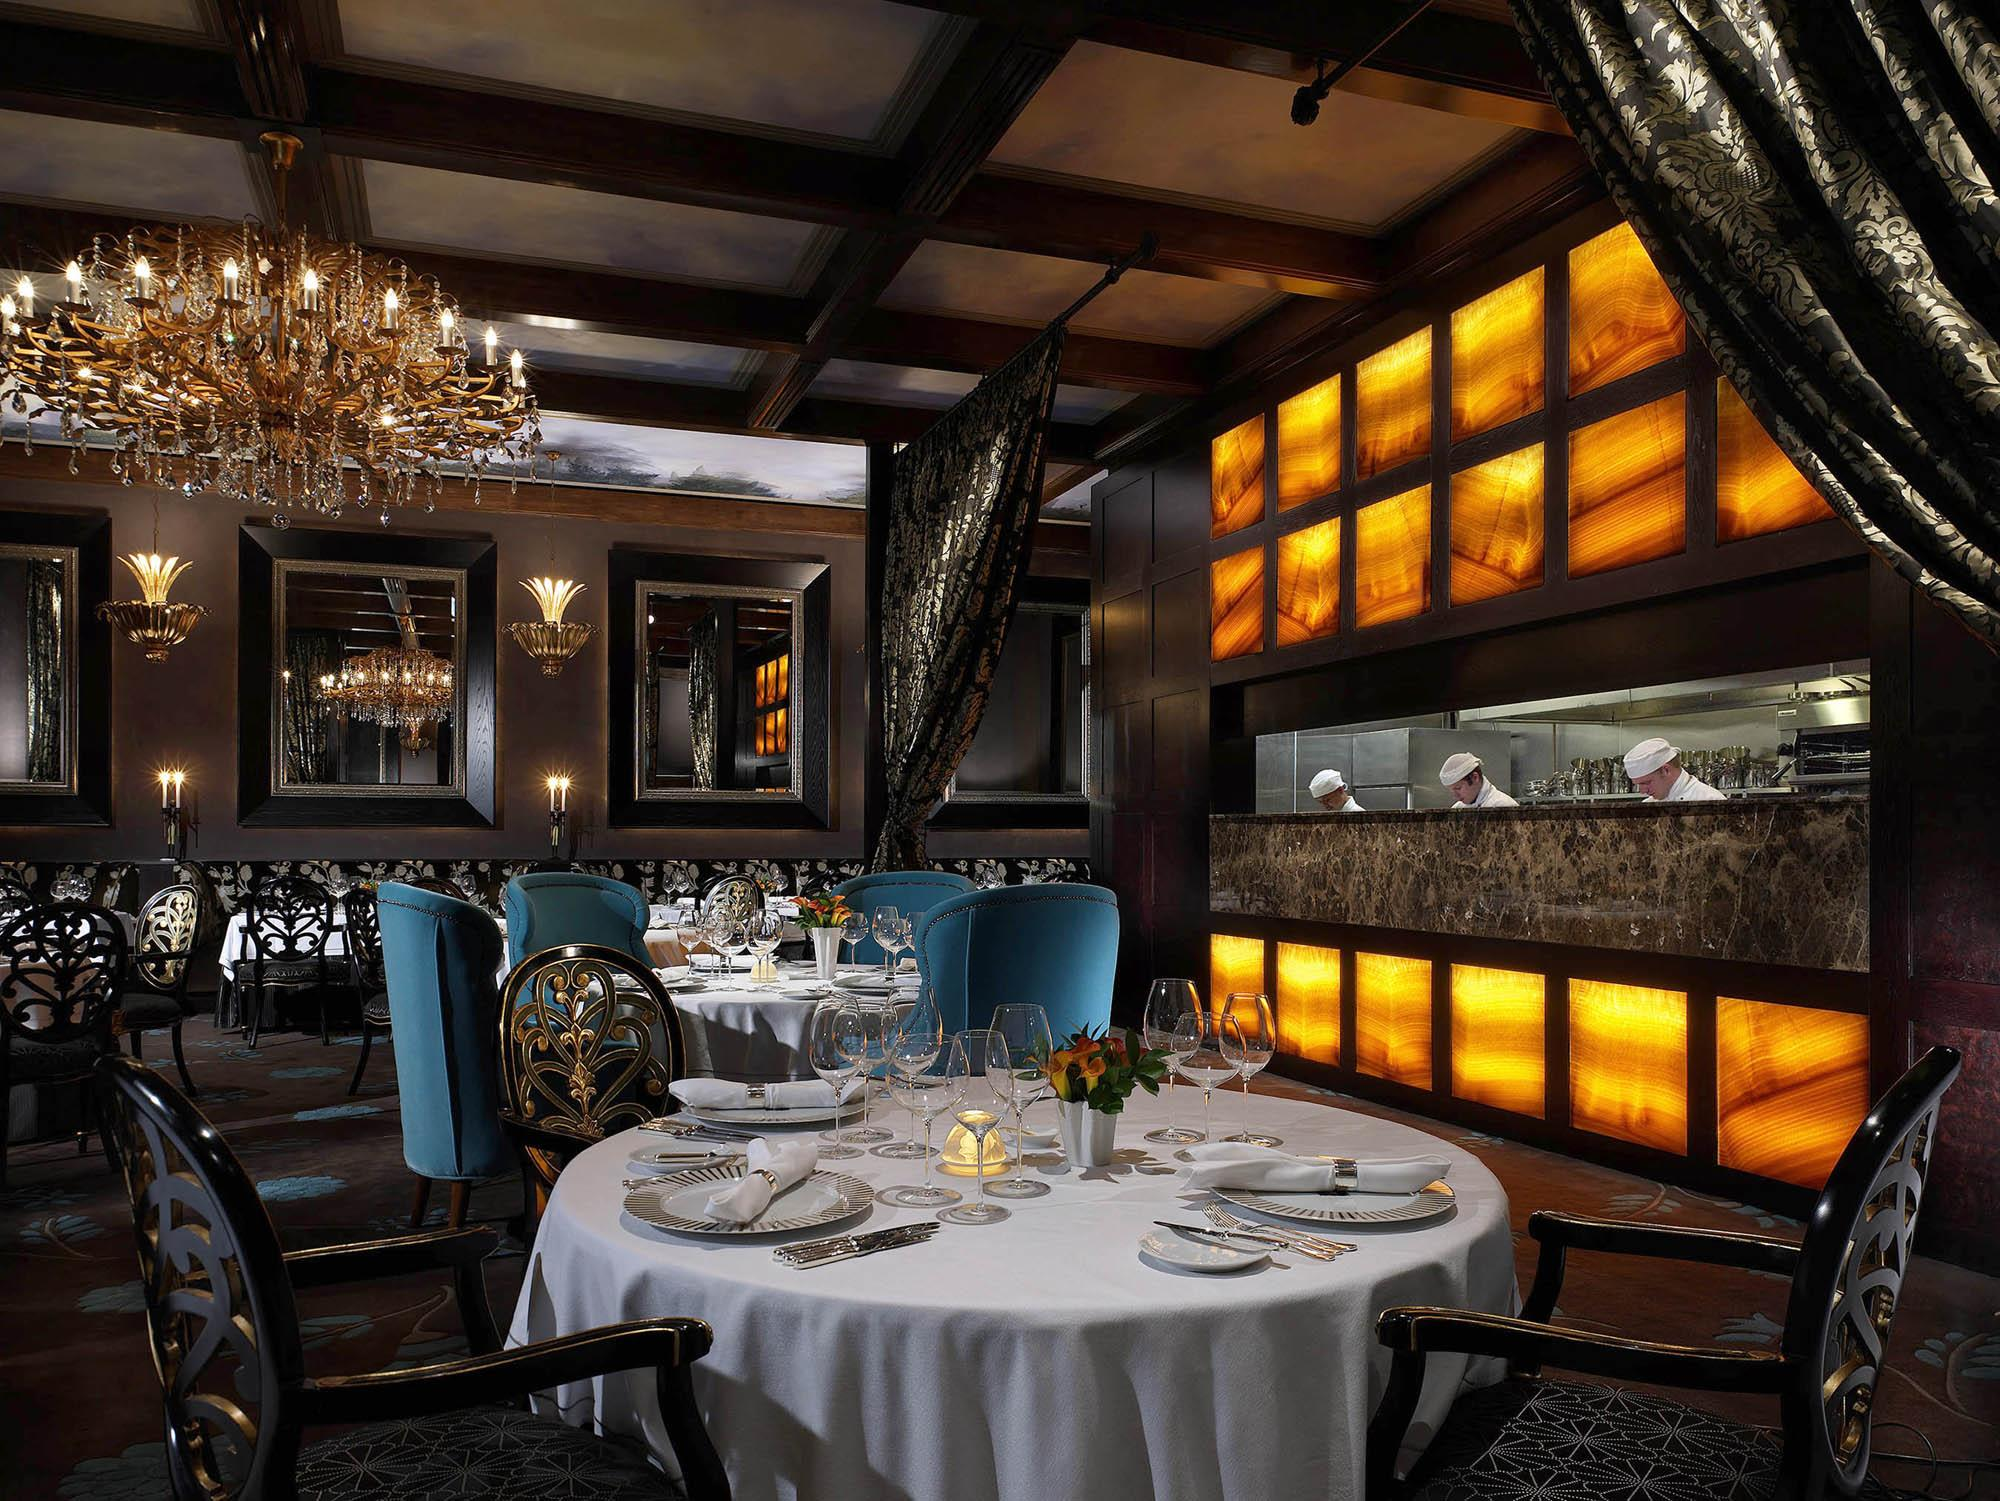 Who Says No Highend Dining On Mondays?  Scoop News